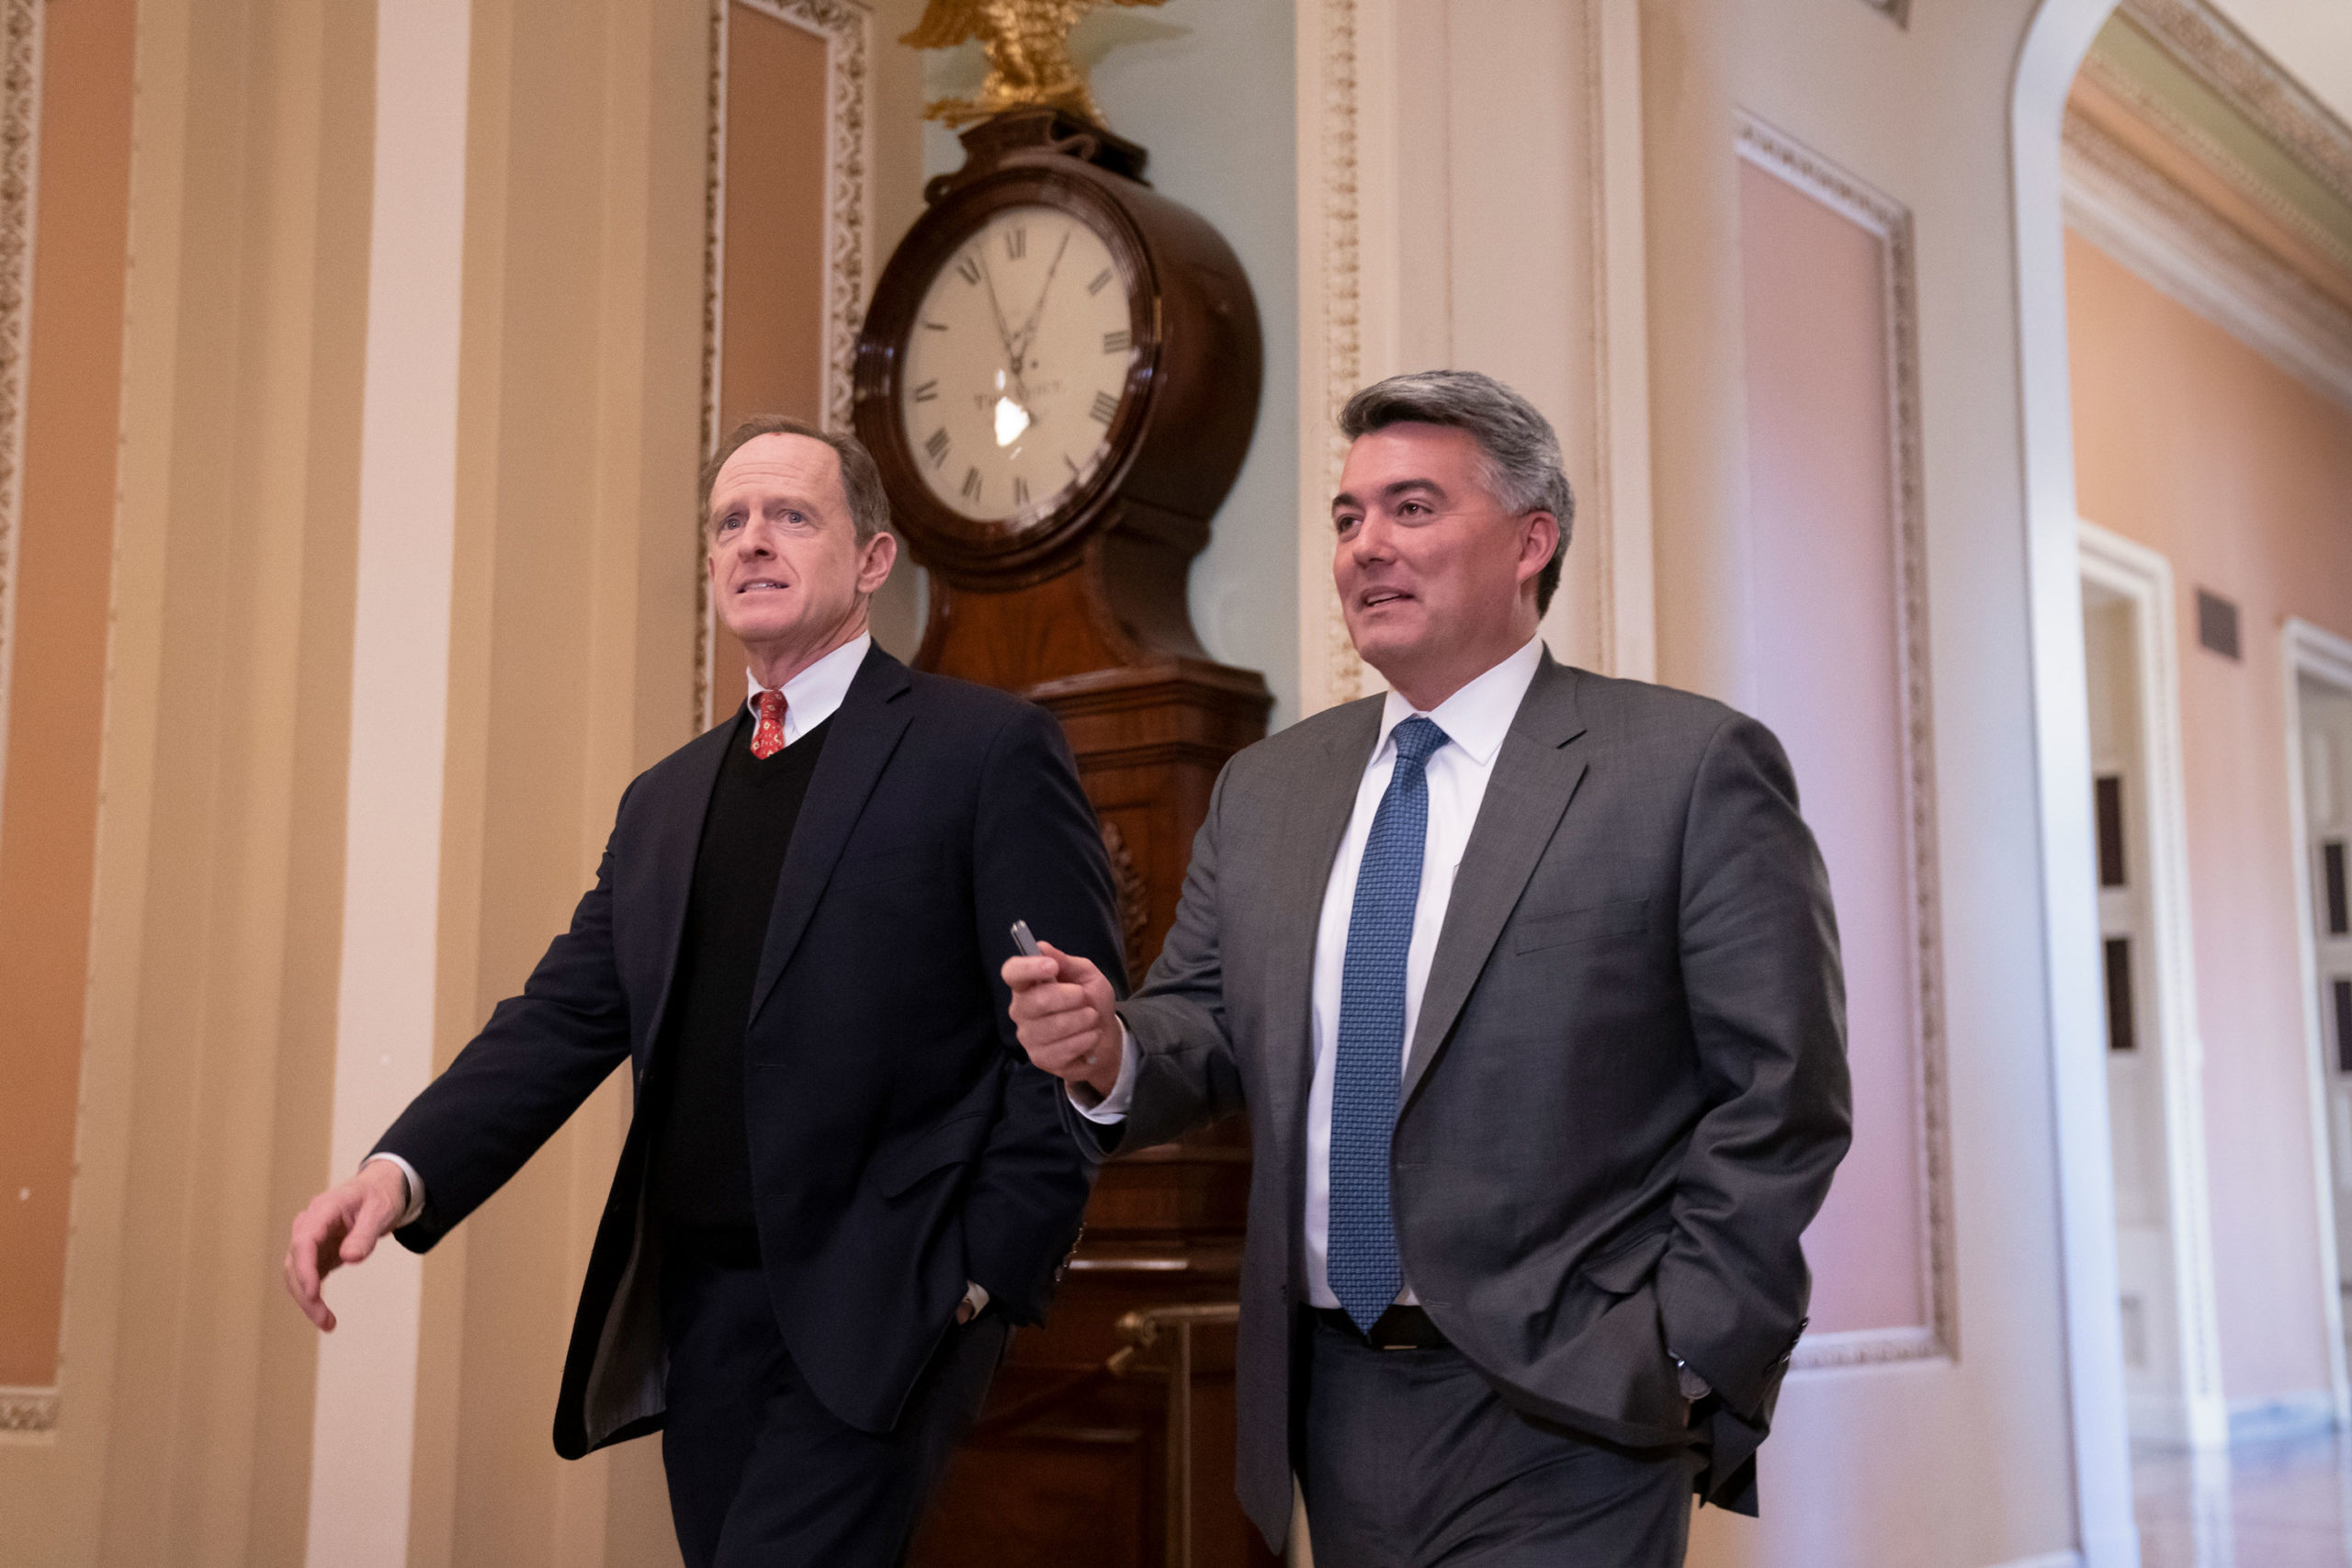 Sen. Pat Toomey, R-Pa., left, and Sen. Cory Gardner, R-Colo., arrives at the Senate for the start of the impeachment trial of President Donald Trump on charges of abuse of power and obstruction of Congress, at the Capitol in Washington, Tuesday, Jan. 21, 2020.